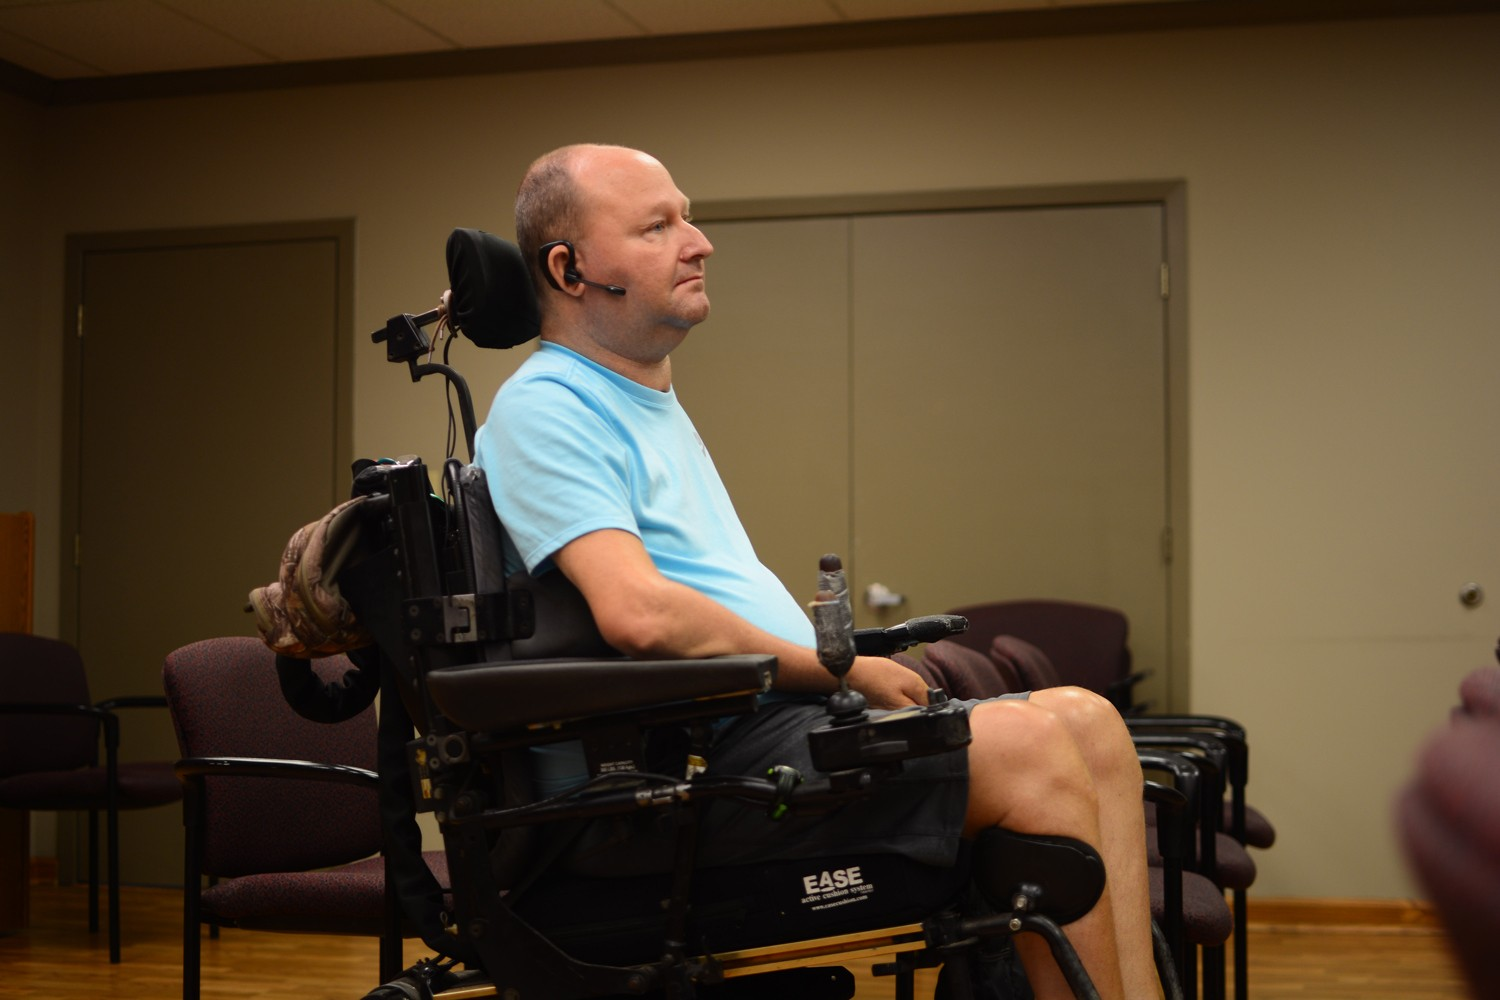 DHS rule change threatens disabled care - Arkansas Times